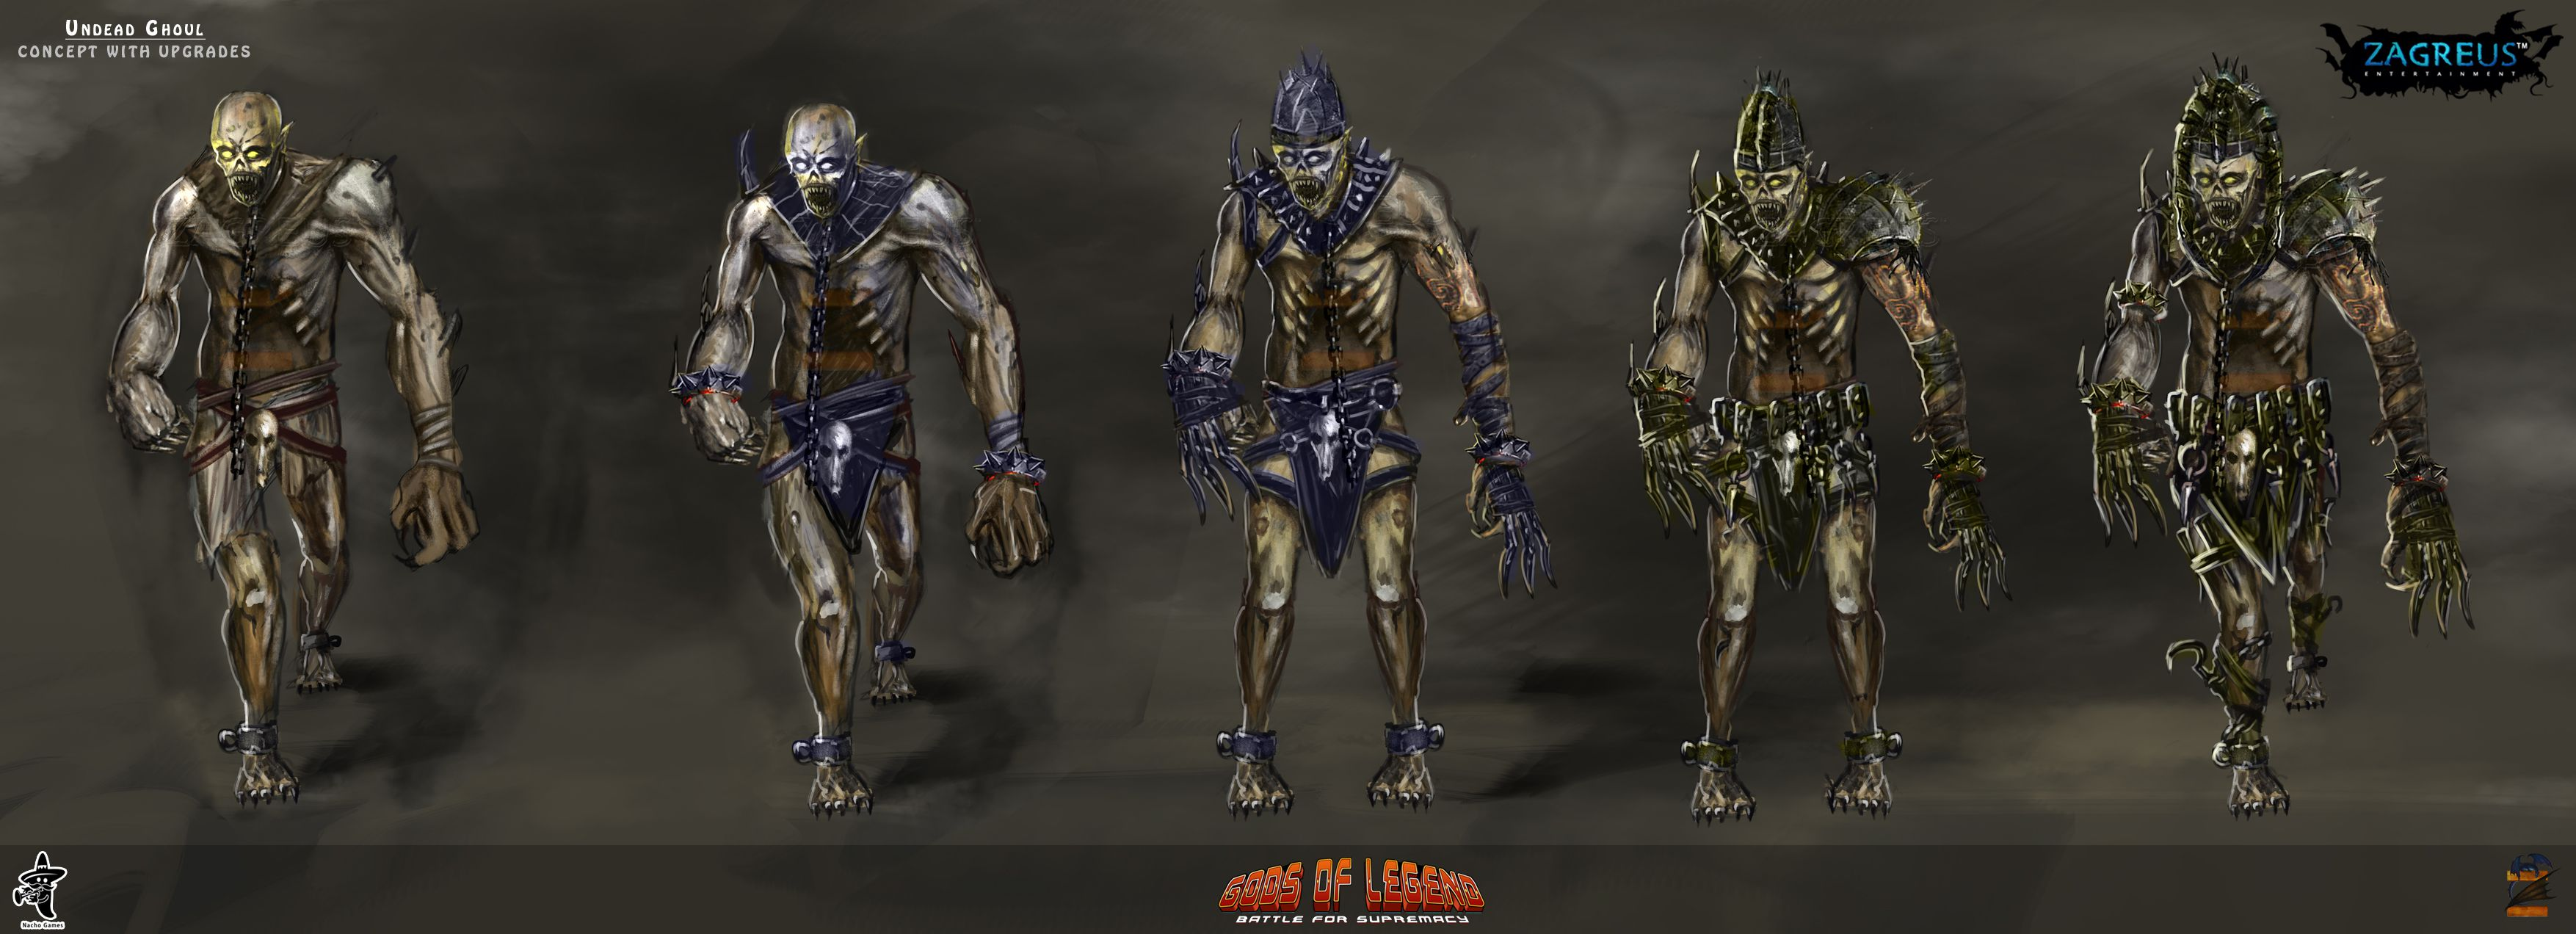 undead-ghoul-concept-upgrades_ze.jpg